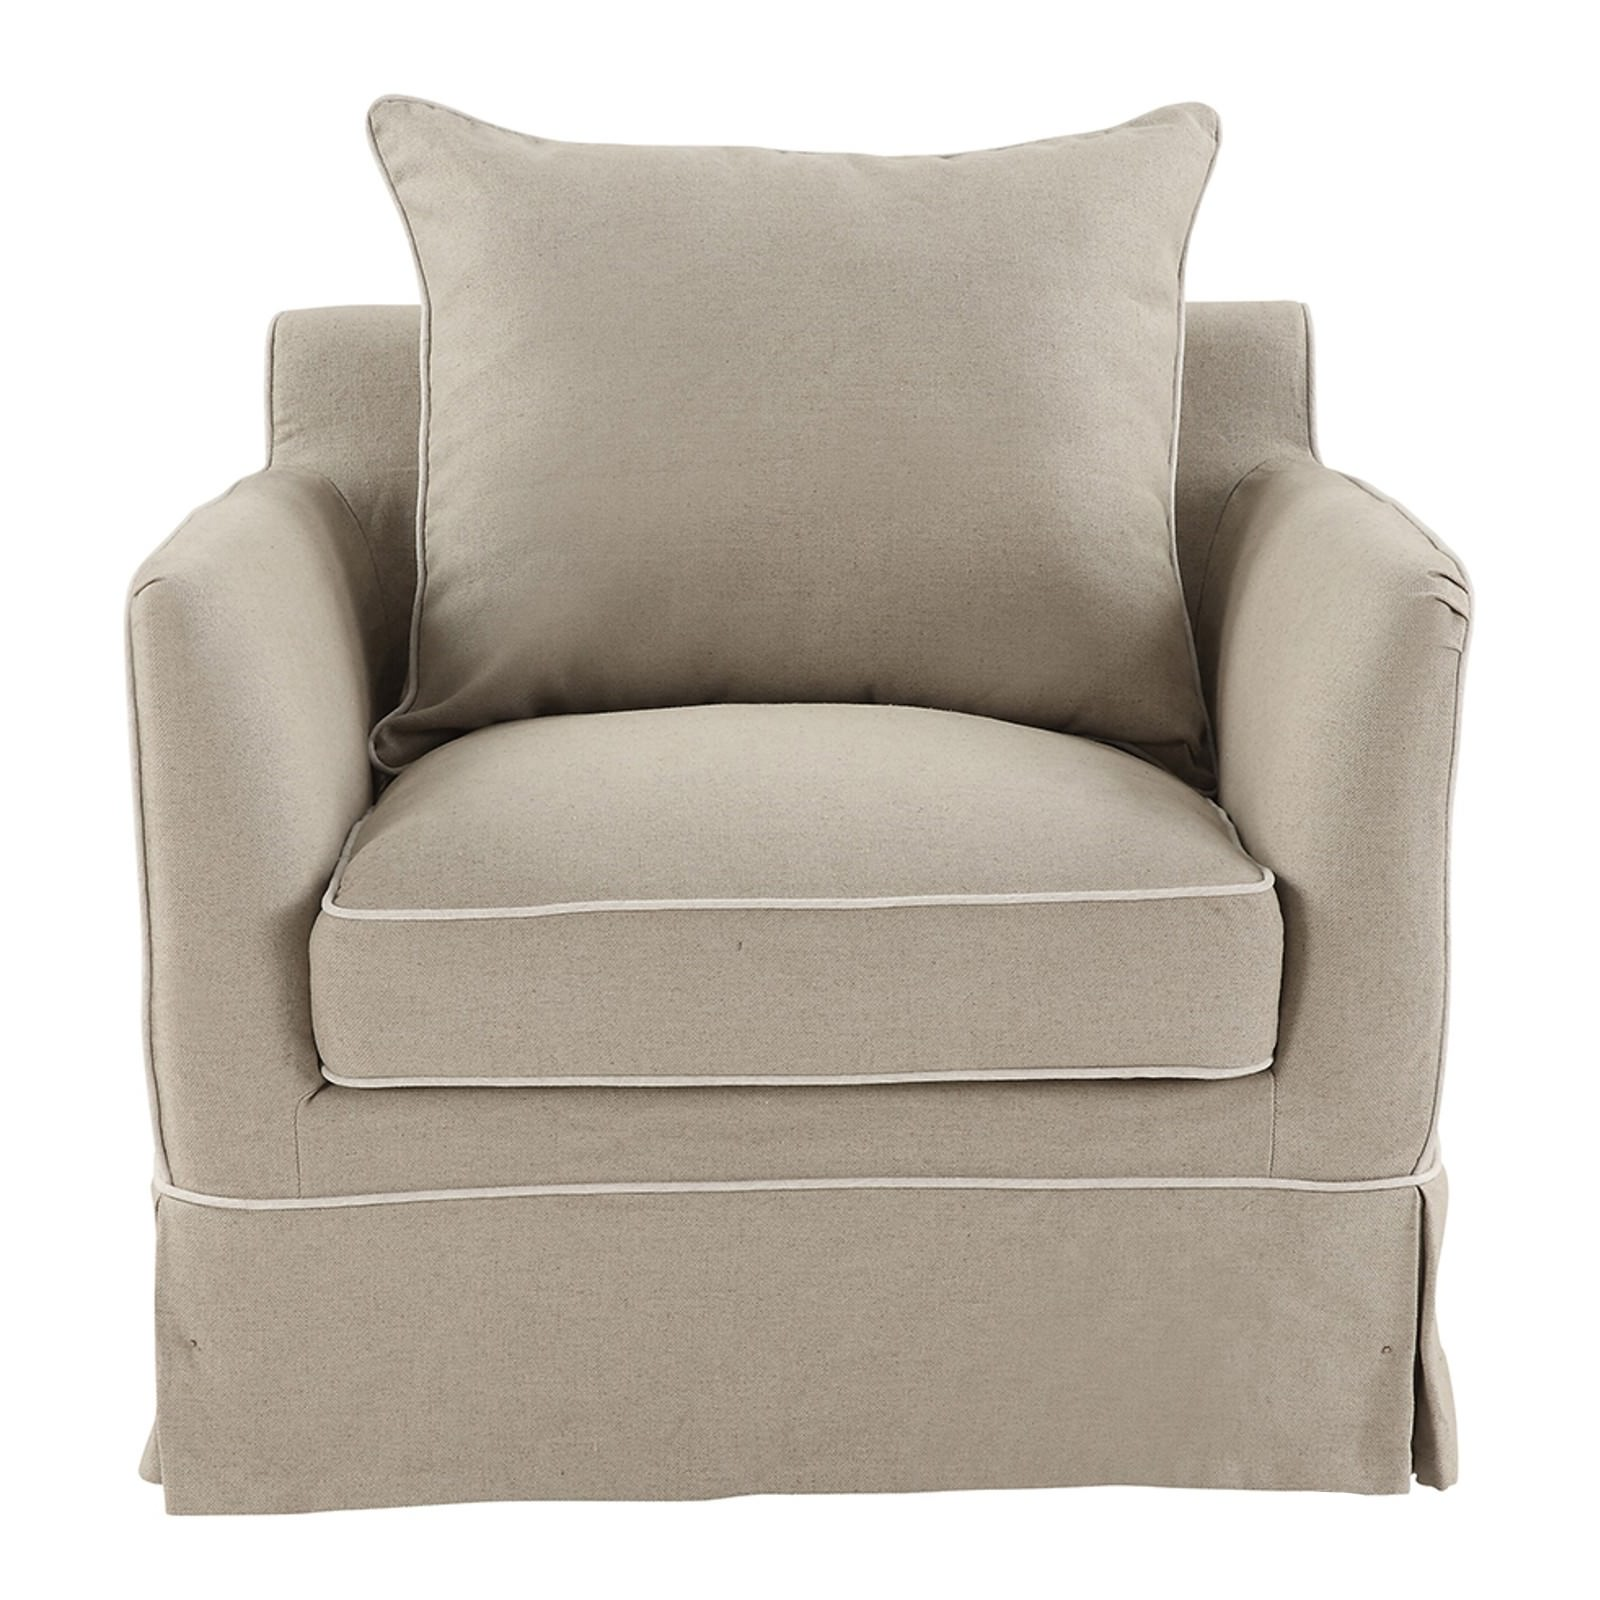 Noosa Fabric Armchair Cover (Cover Only), Beige with White Piping